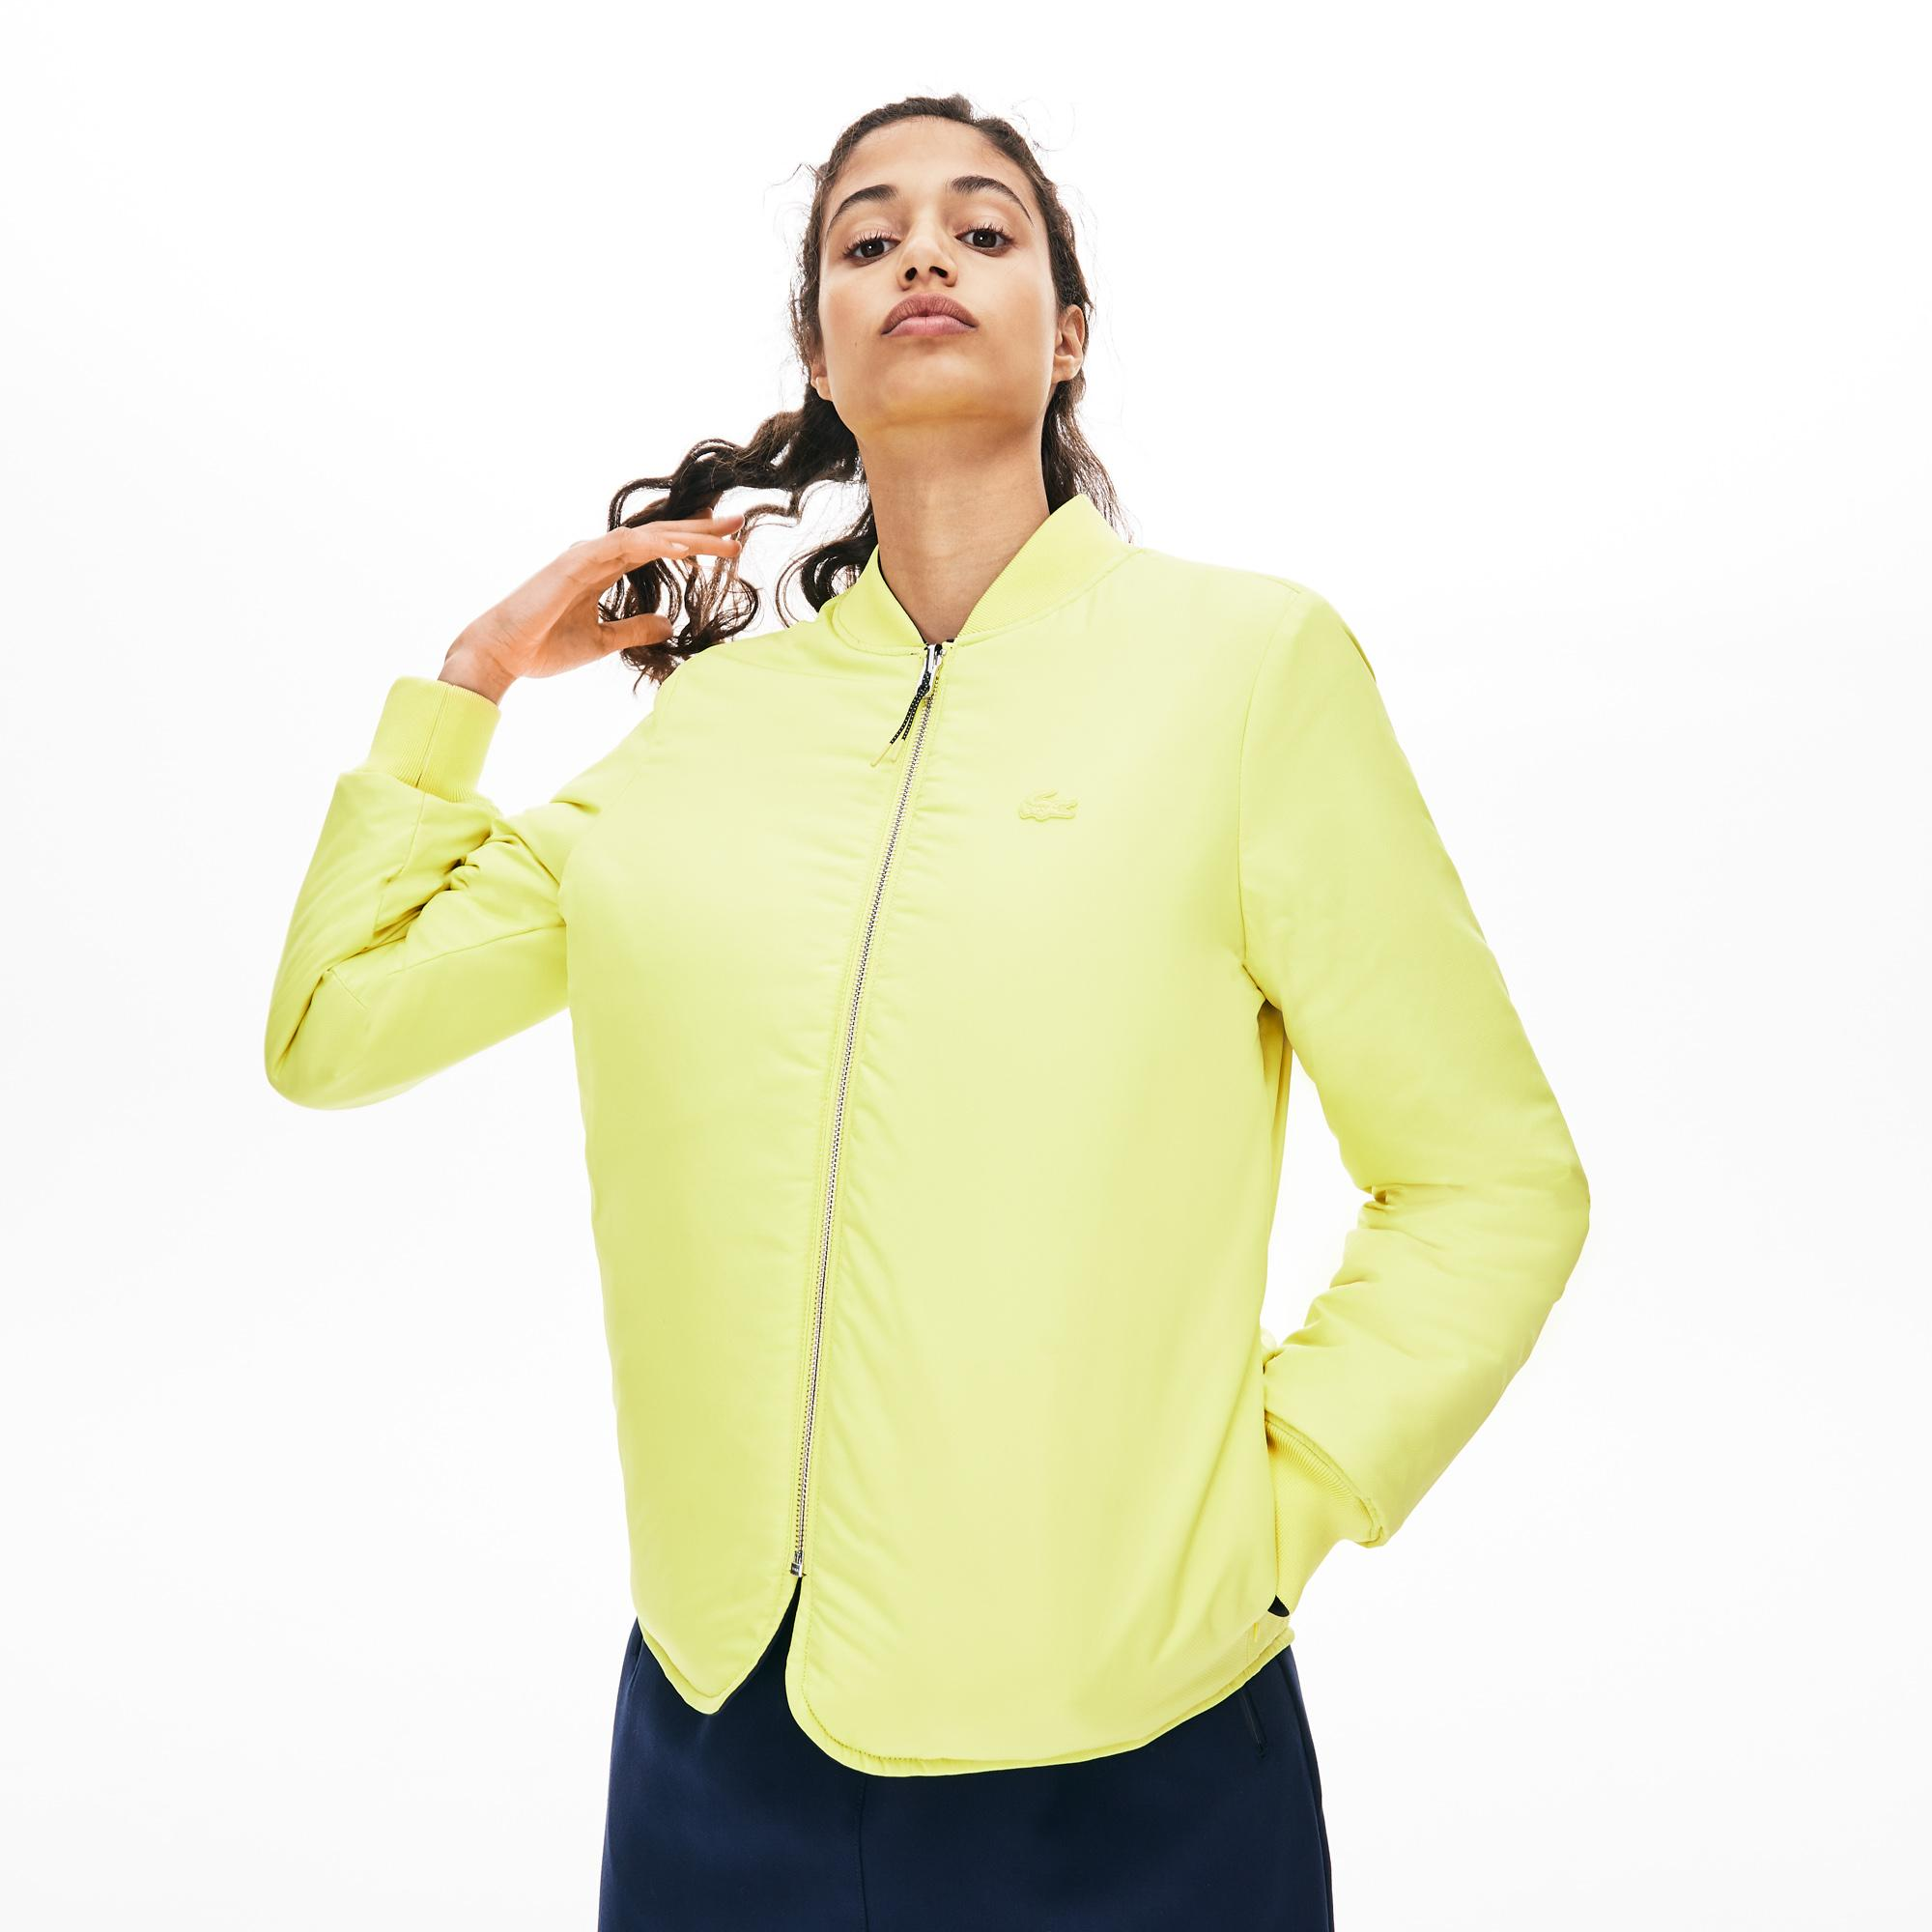 Lacoste Women's Seamlessly Quilted Reversible Bi-Material Rain Jacket